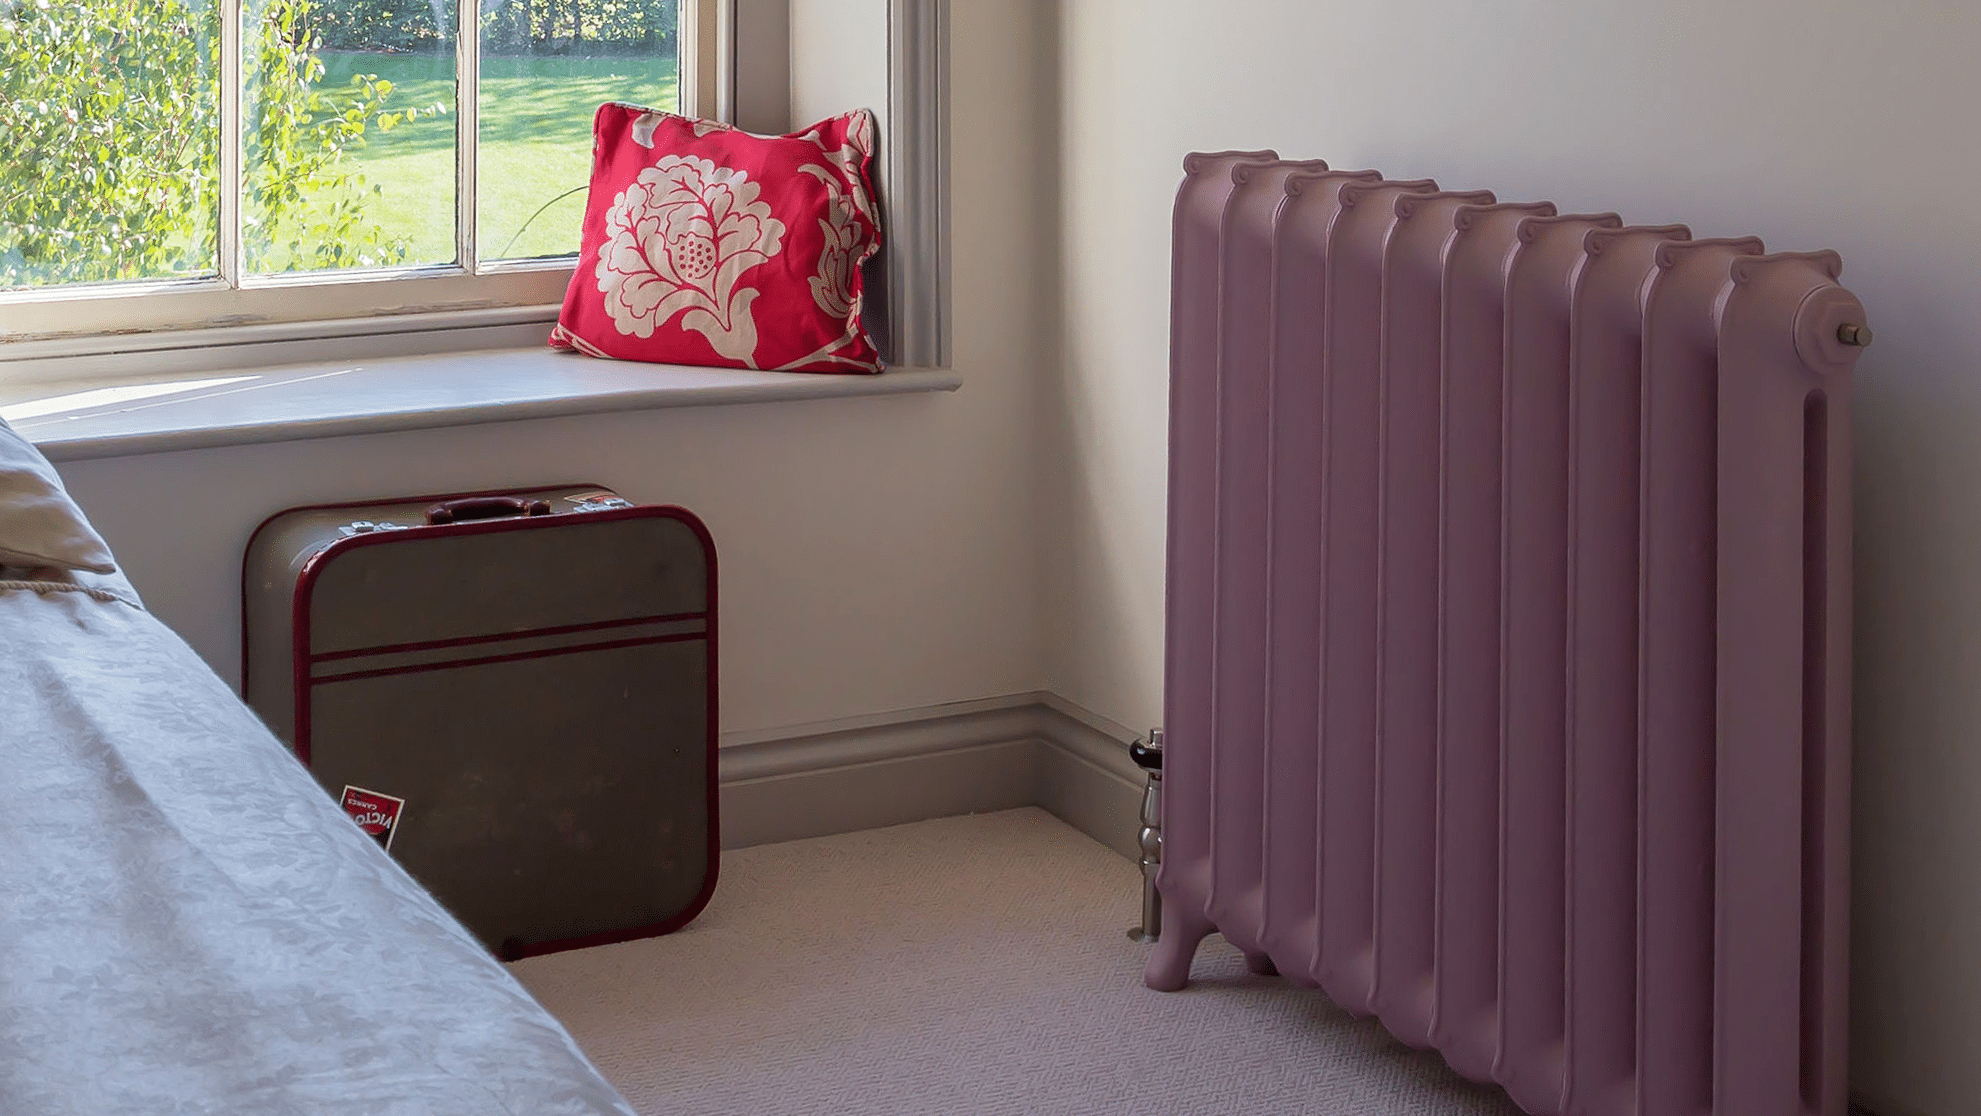 Paladin Montpelier Daisy Radiator Bone Colour